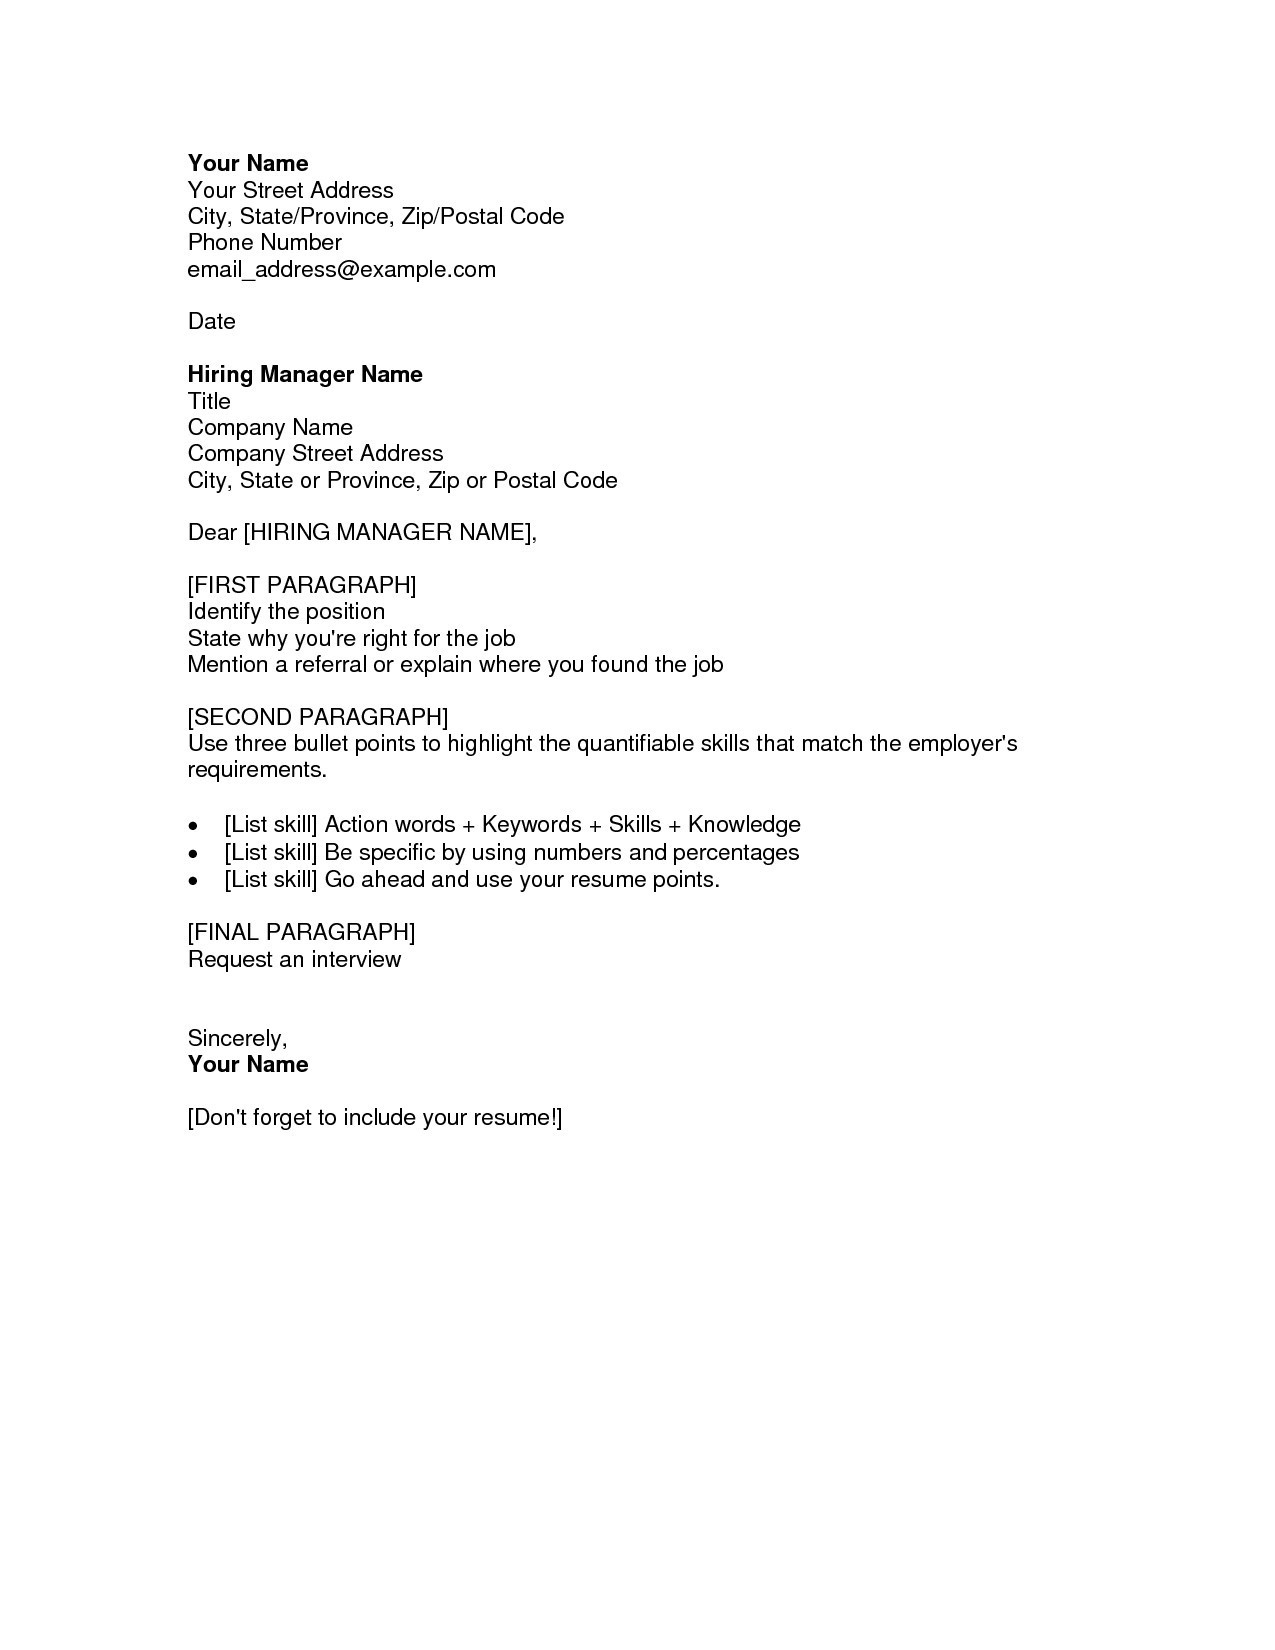 Resume and Cover Letter Writers - How to Address A Cover Letter to A Pany New Fresh Cover Letter